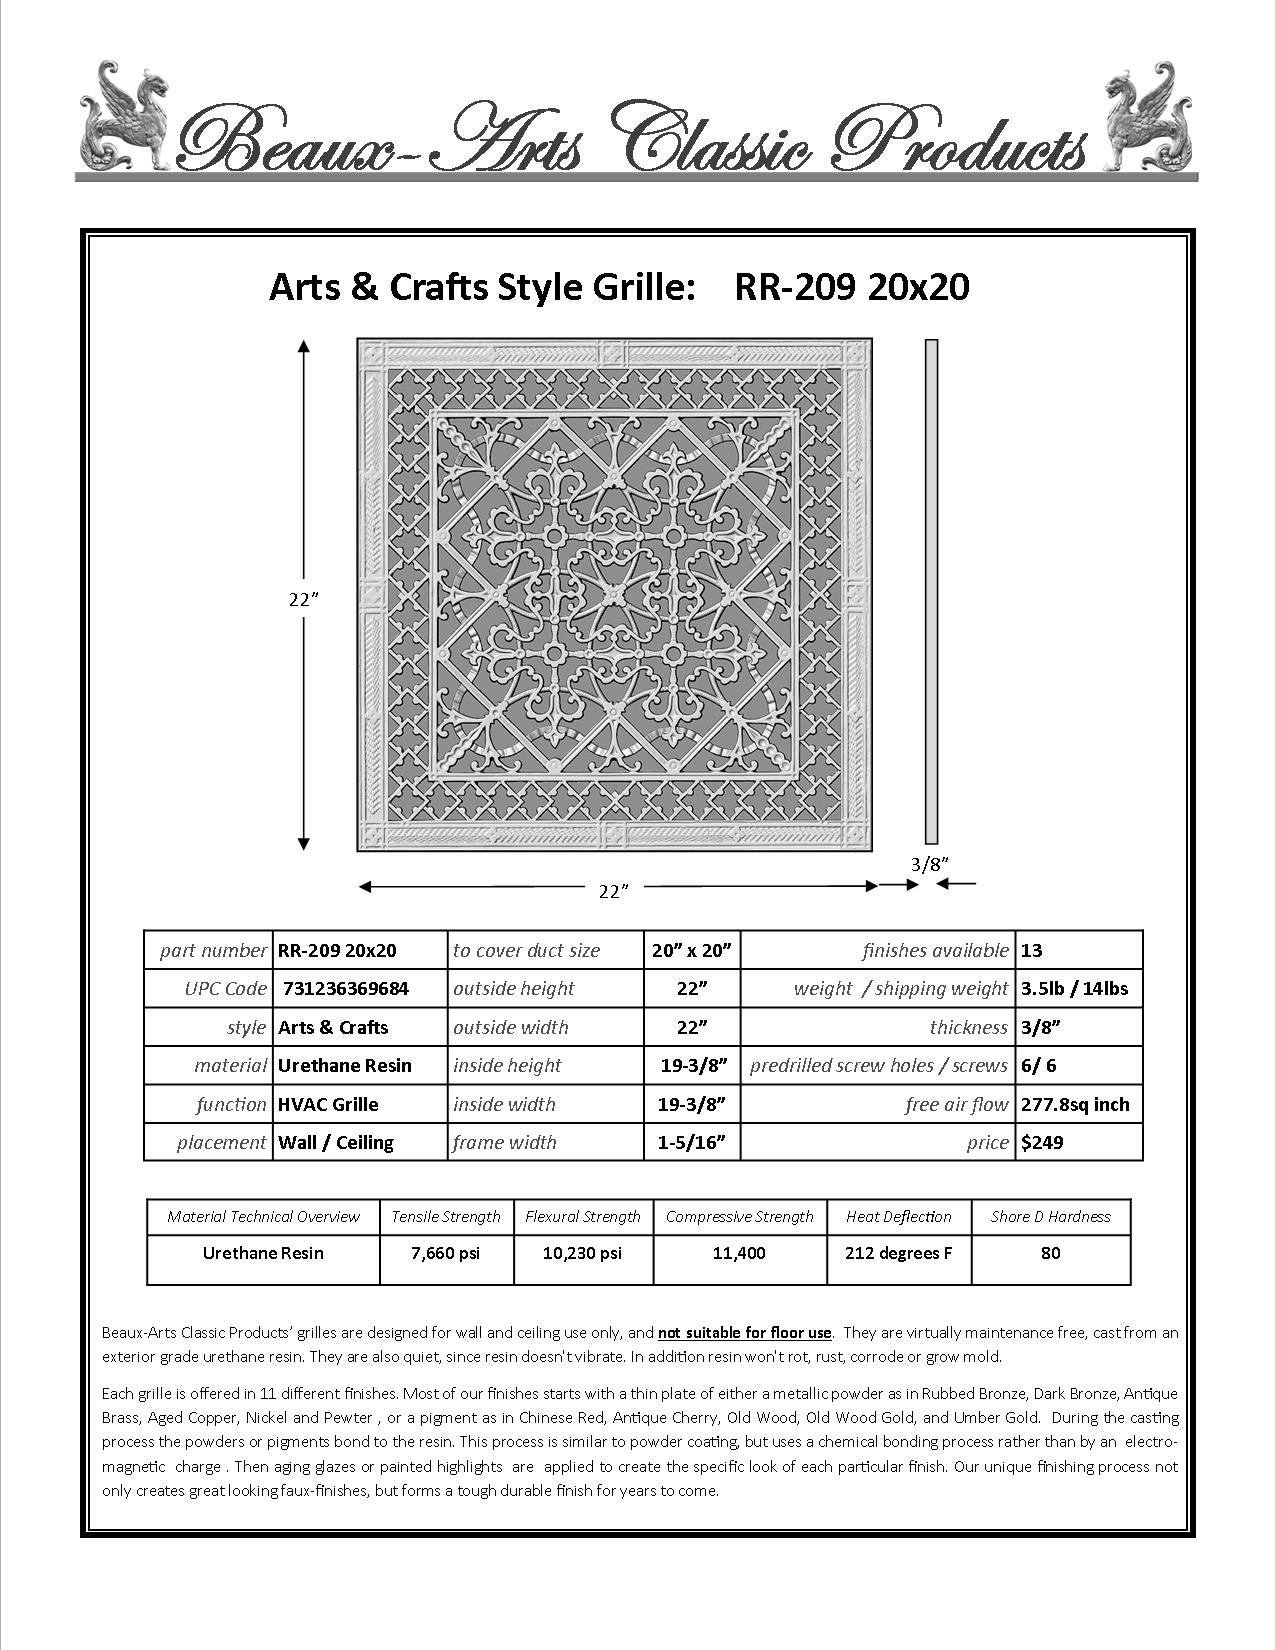 Decorative Grille, Vent Cover, or Return Register. Made of Urethane Resin to fit over a 20''x20'' duct or opening. Total size of vent is 22''x22''x3/8'', for wall and ceiling grilles (not for floor use).